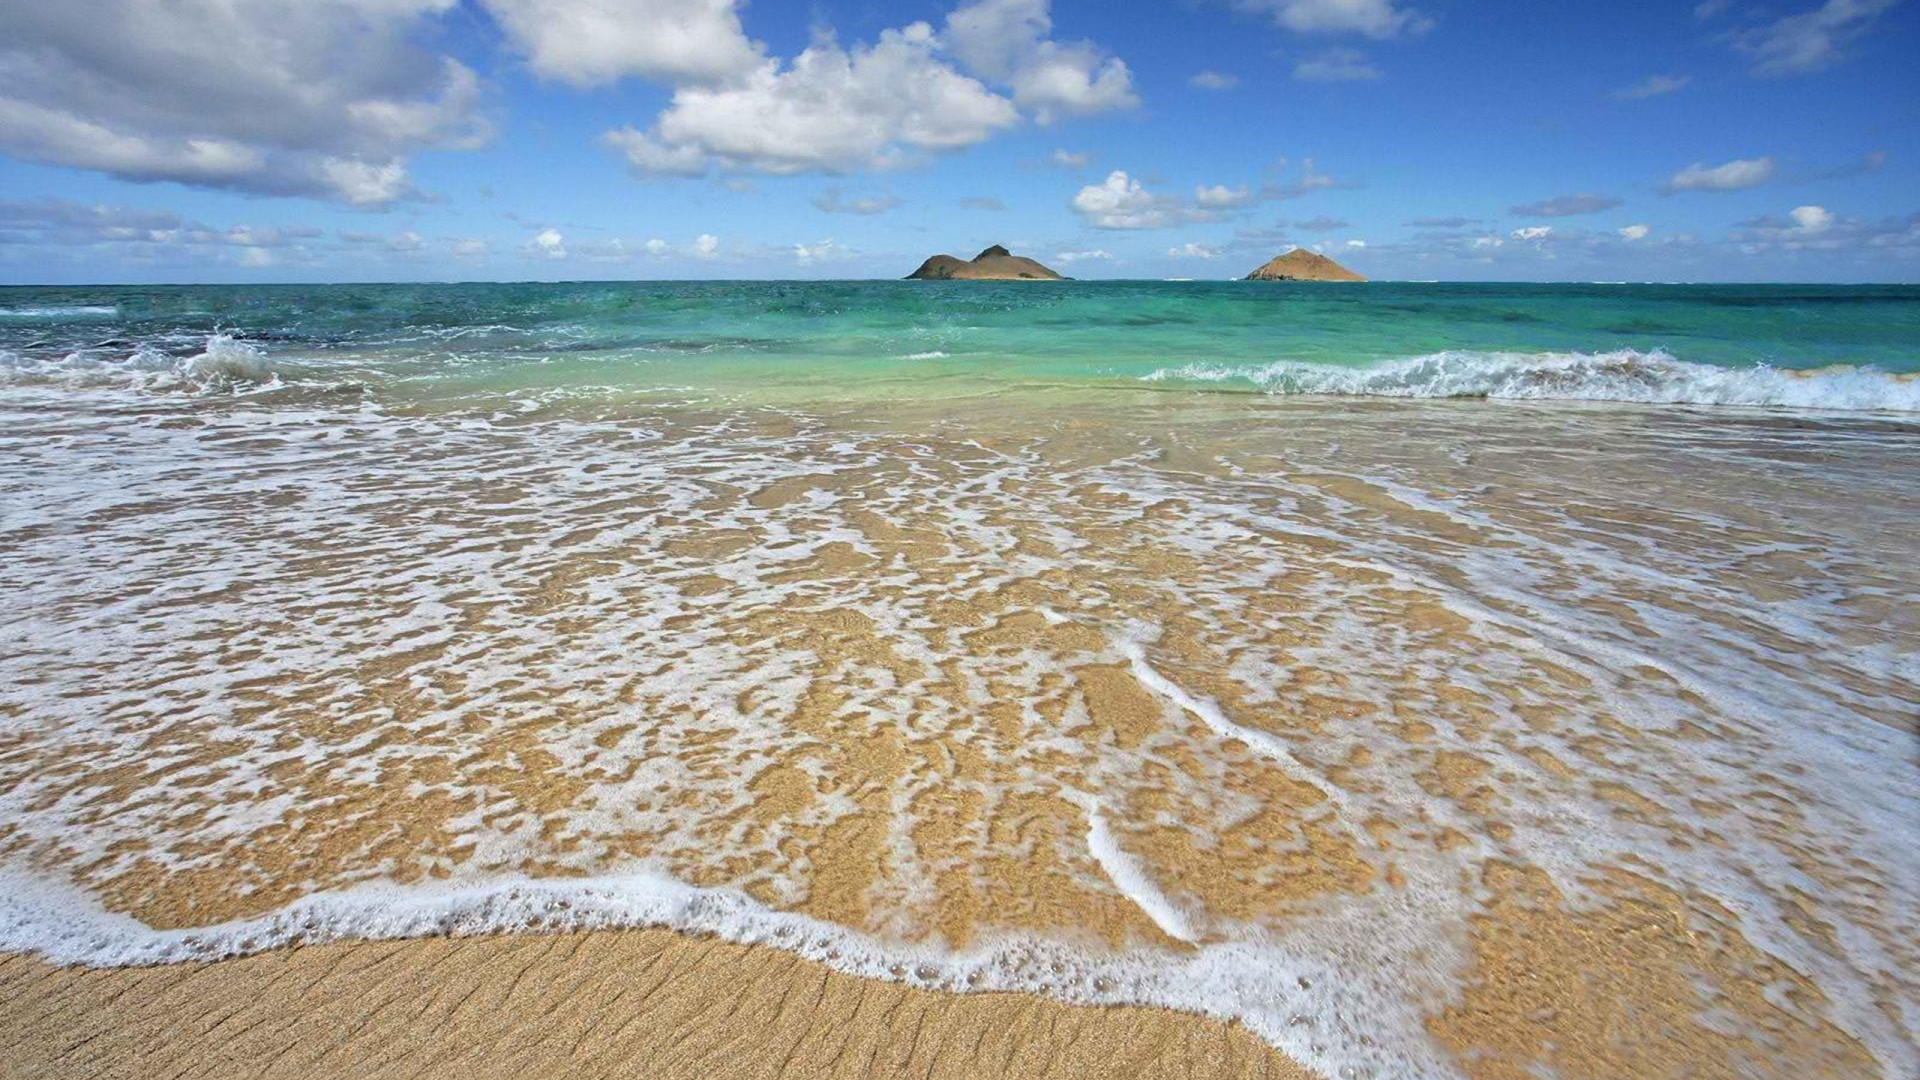 Hawaii Beach Waves Honeymoon Wallpaper Wallpapers13com 1920x1080